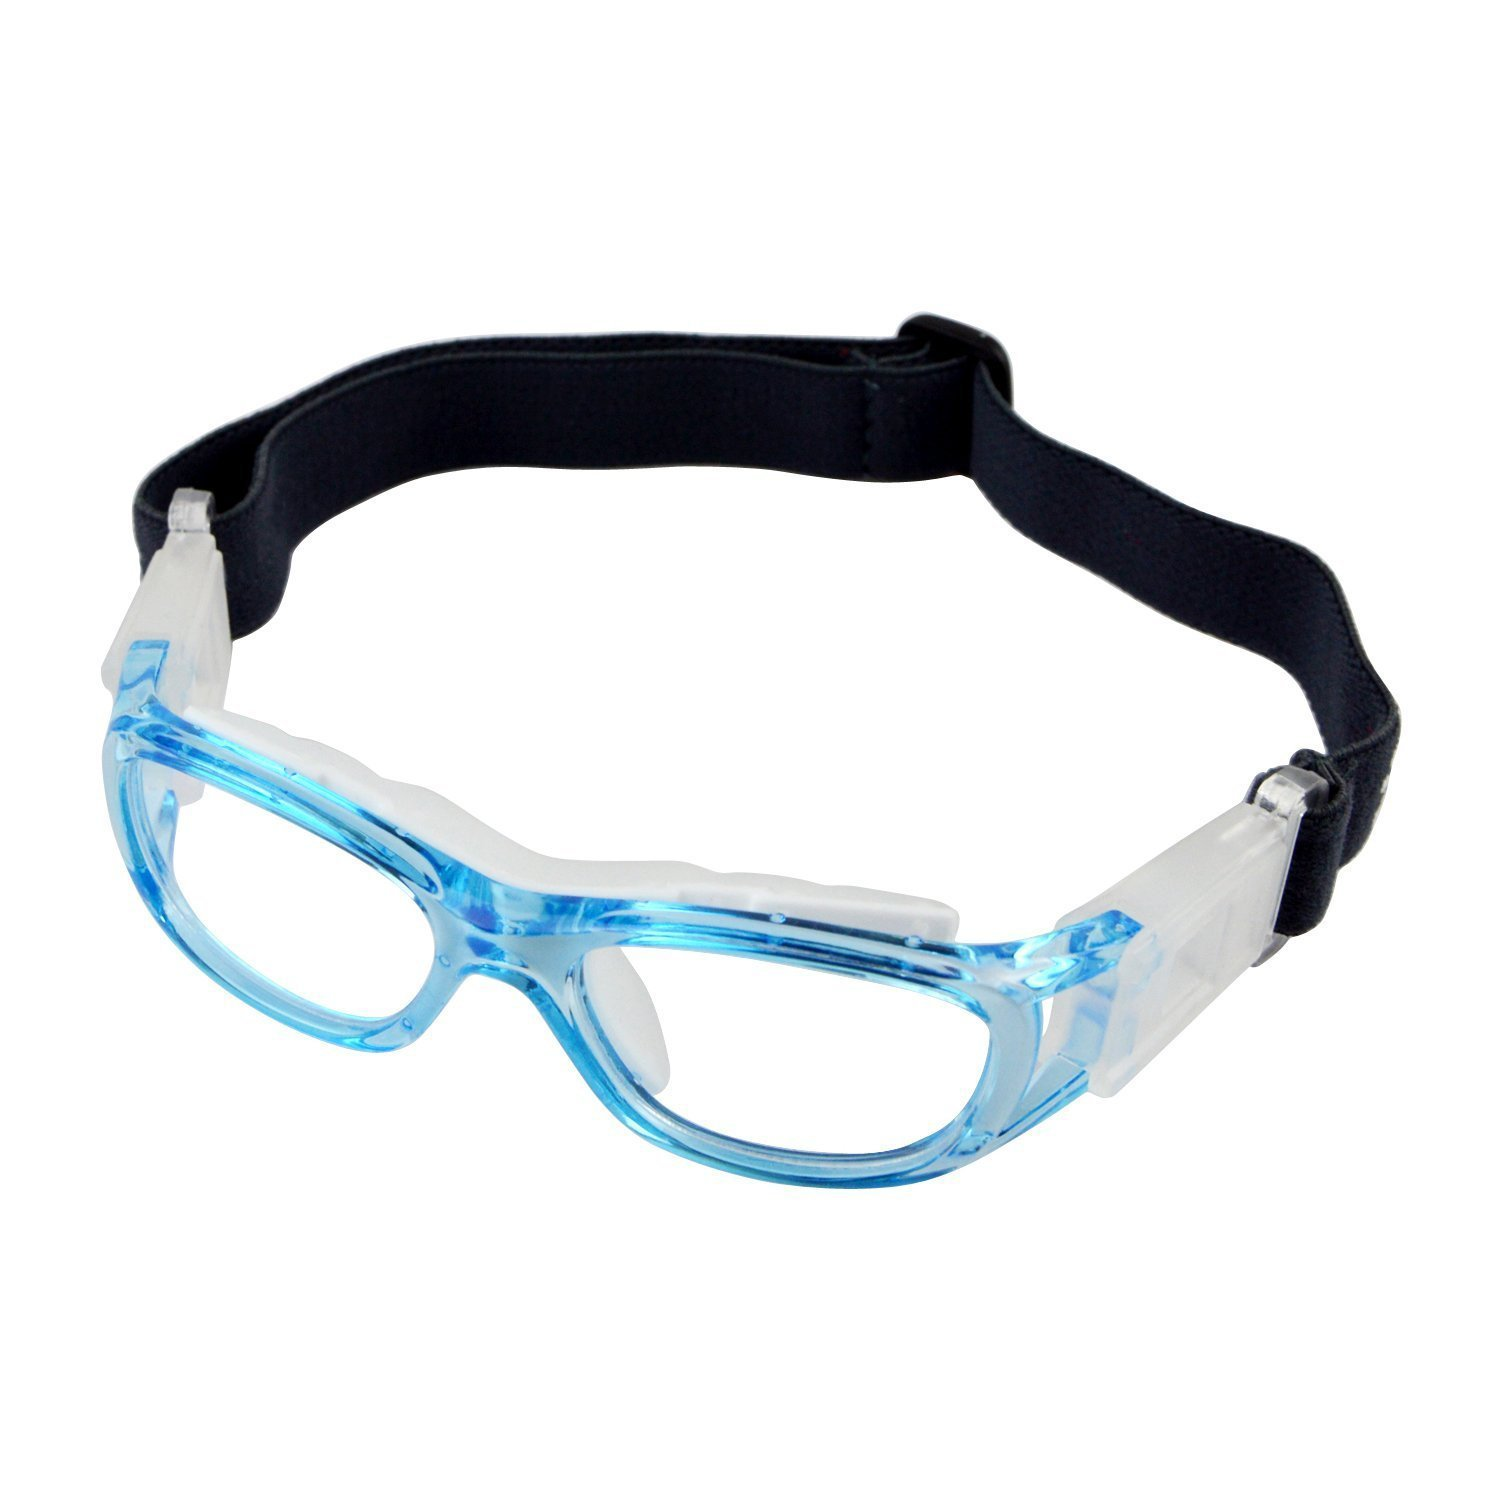 25cc7aba77c Elemart(TM) Unisex Kids Sport Glasses Anti-fog Protective Safety Goggles w